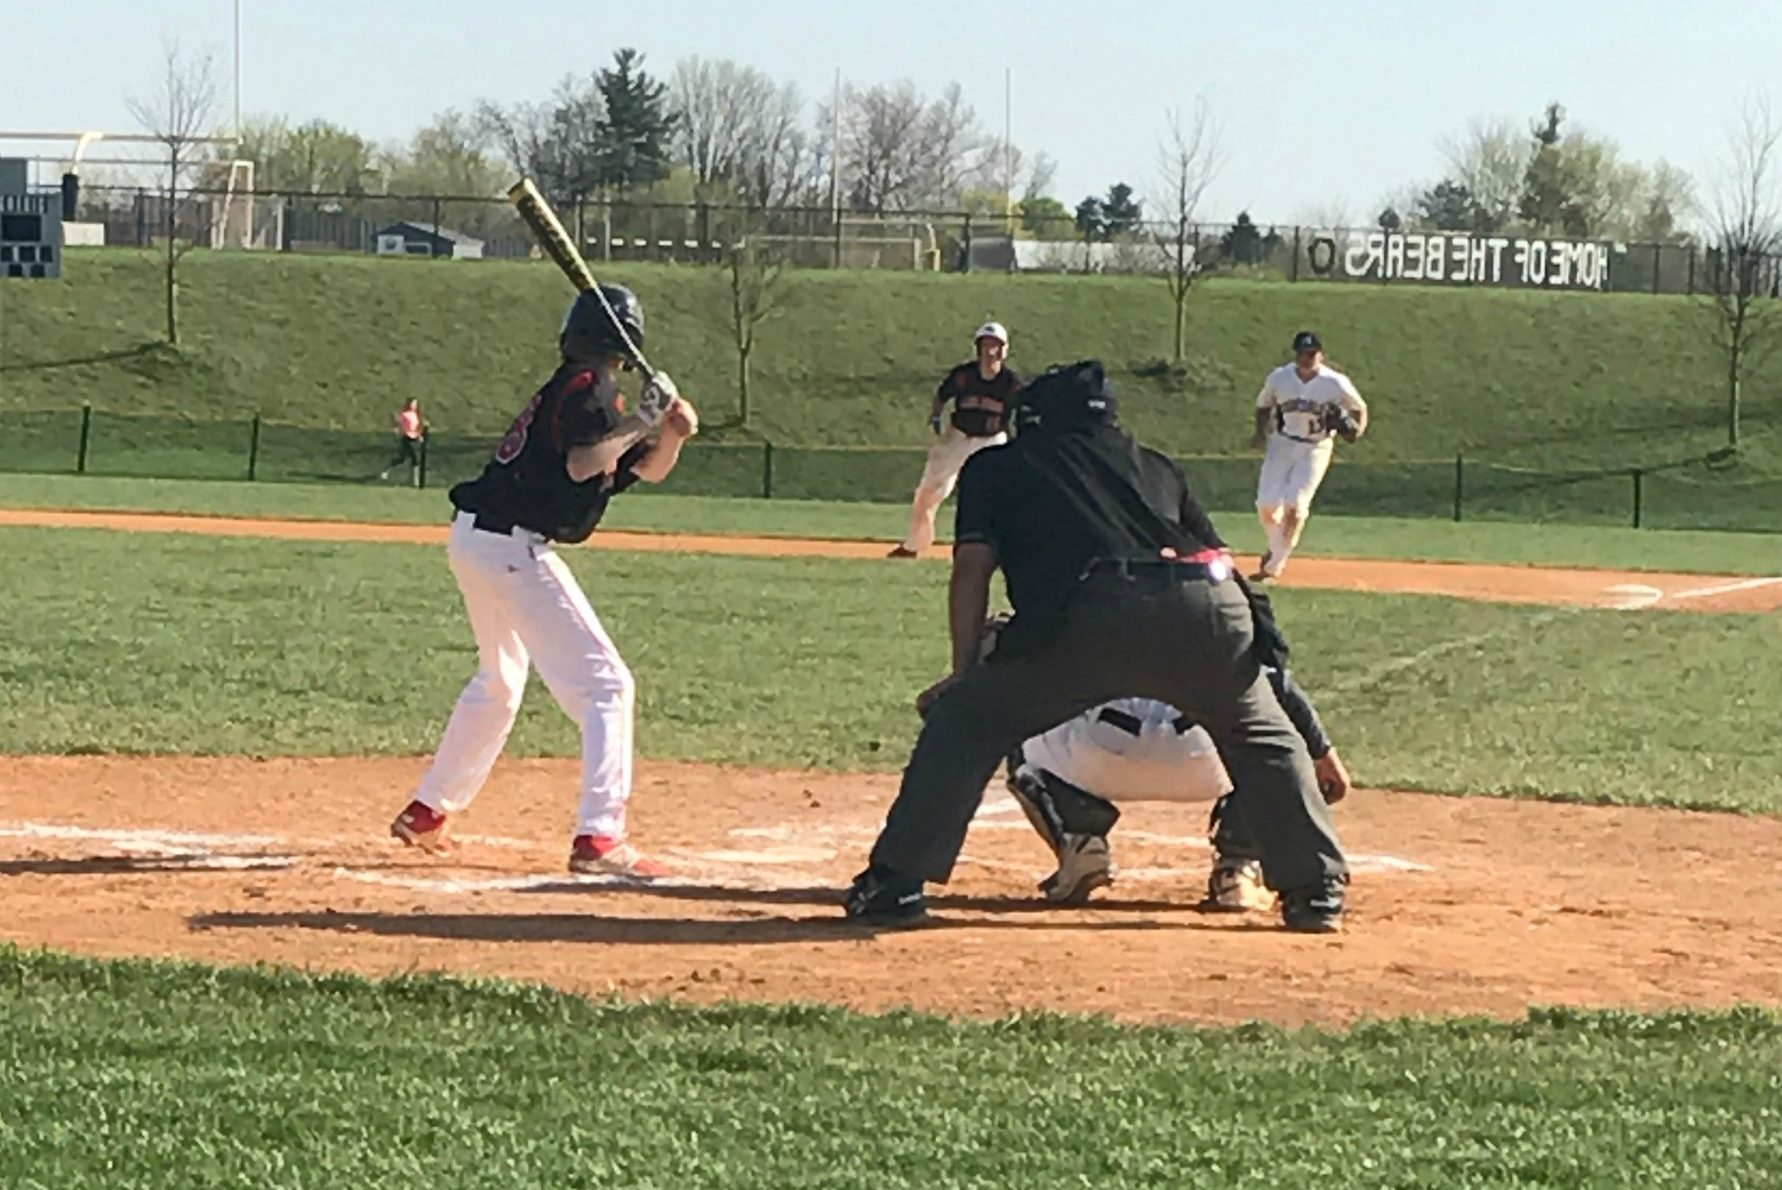 Austin Franks at the plate in the 2nd inning.